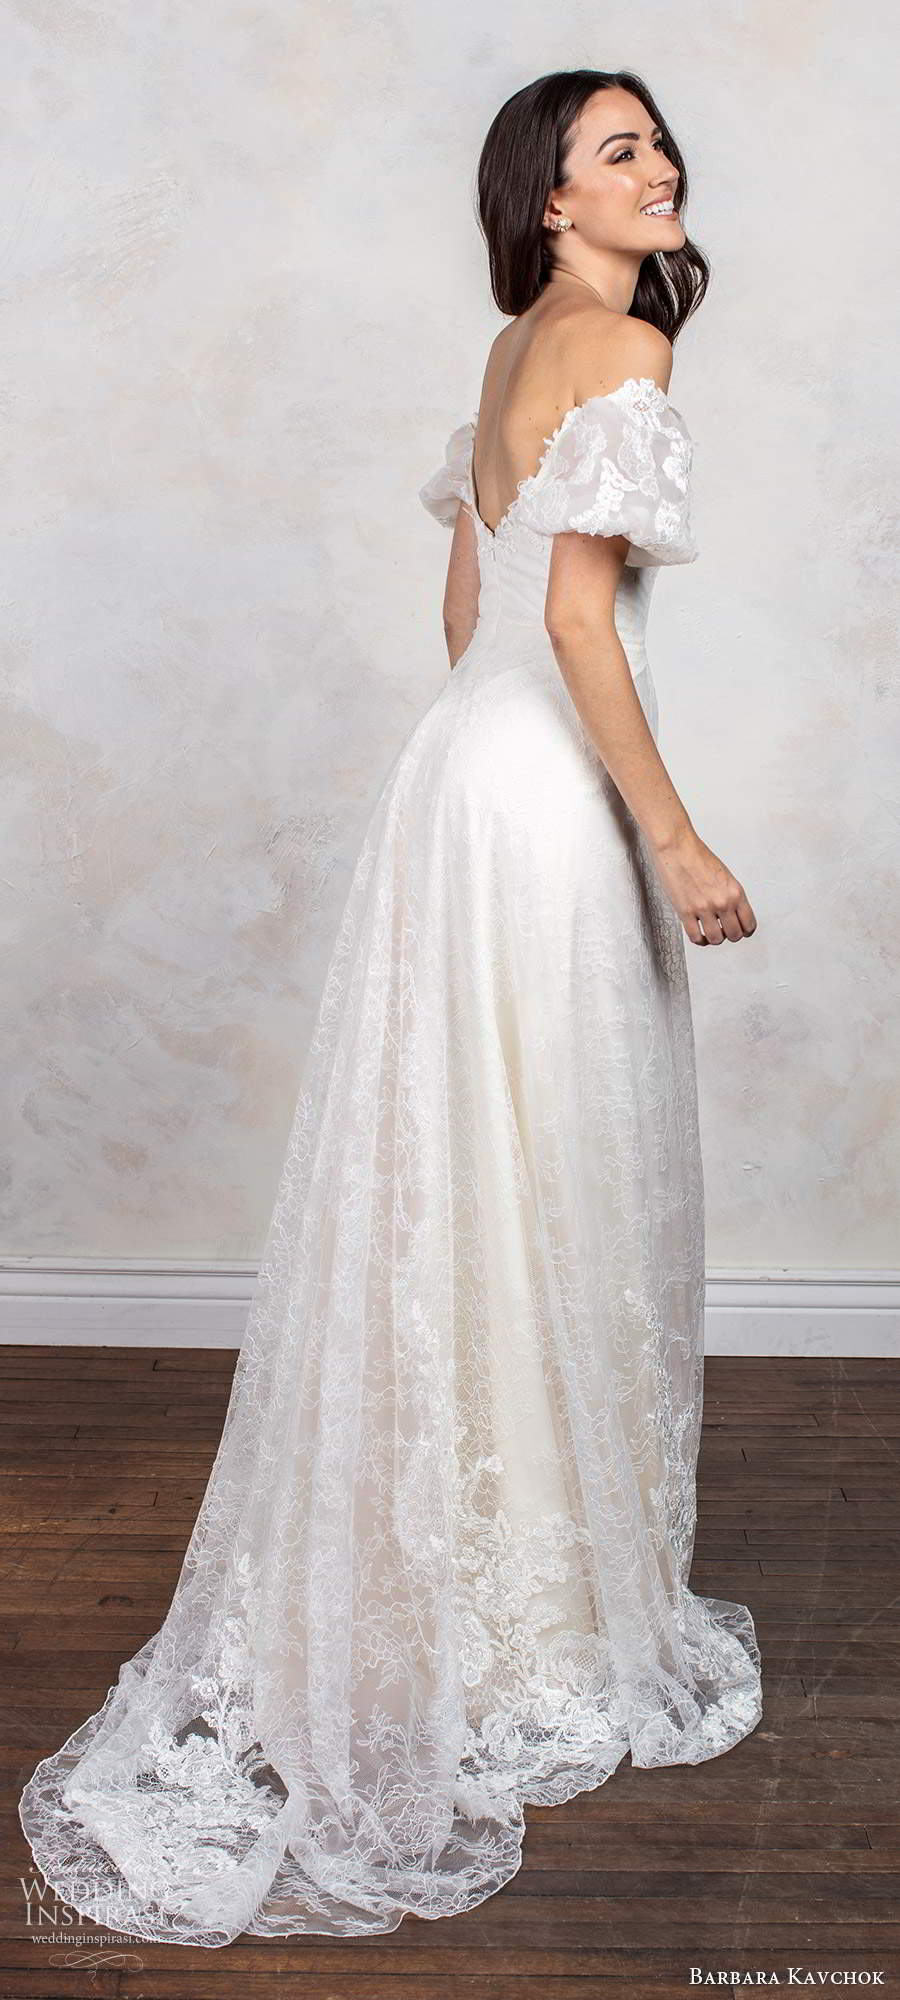 barbara kavchok fall 2020 bridal short puff sleeves off shoulder sweetheart neckline fully embellished lace a line ball gown wedding dress scoop back chapel train (1) bv